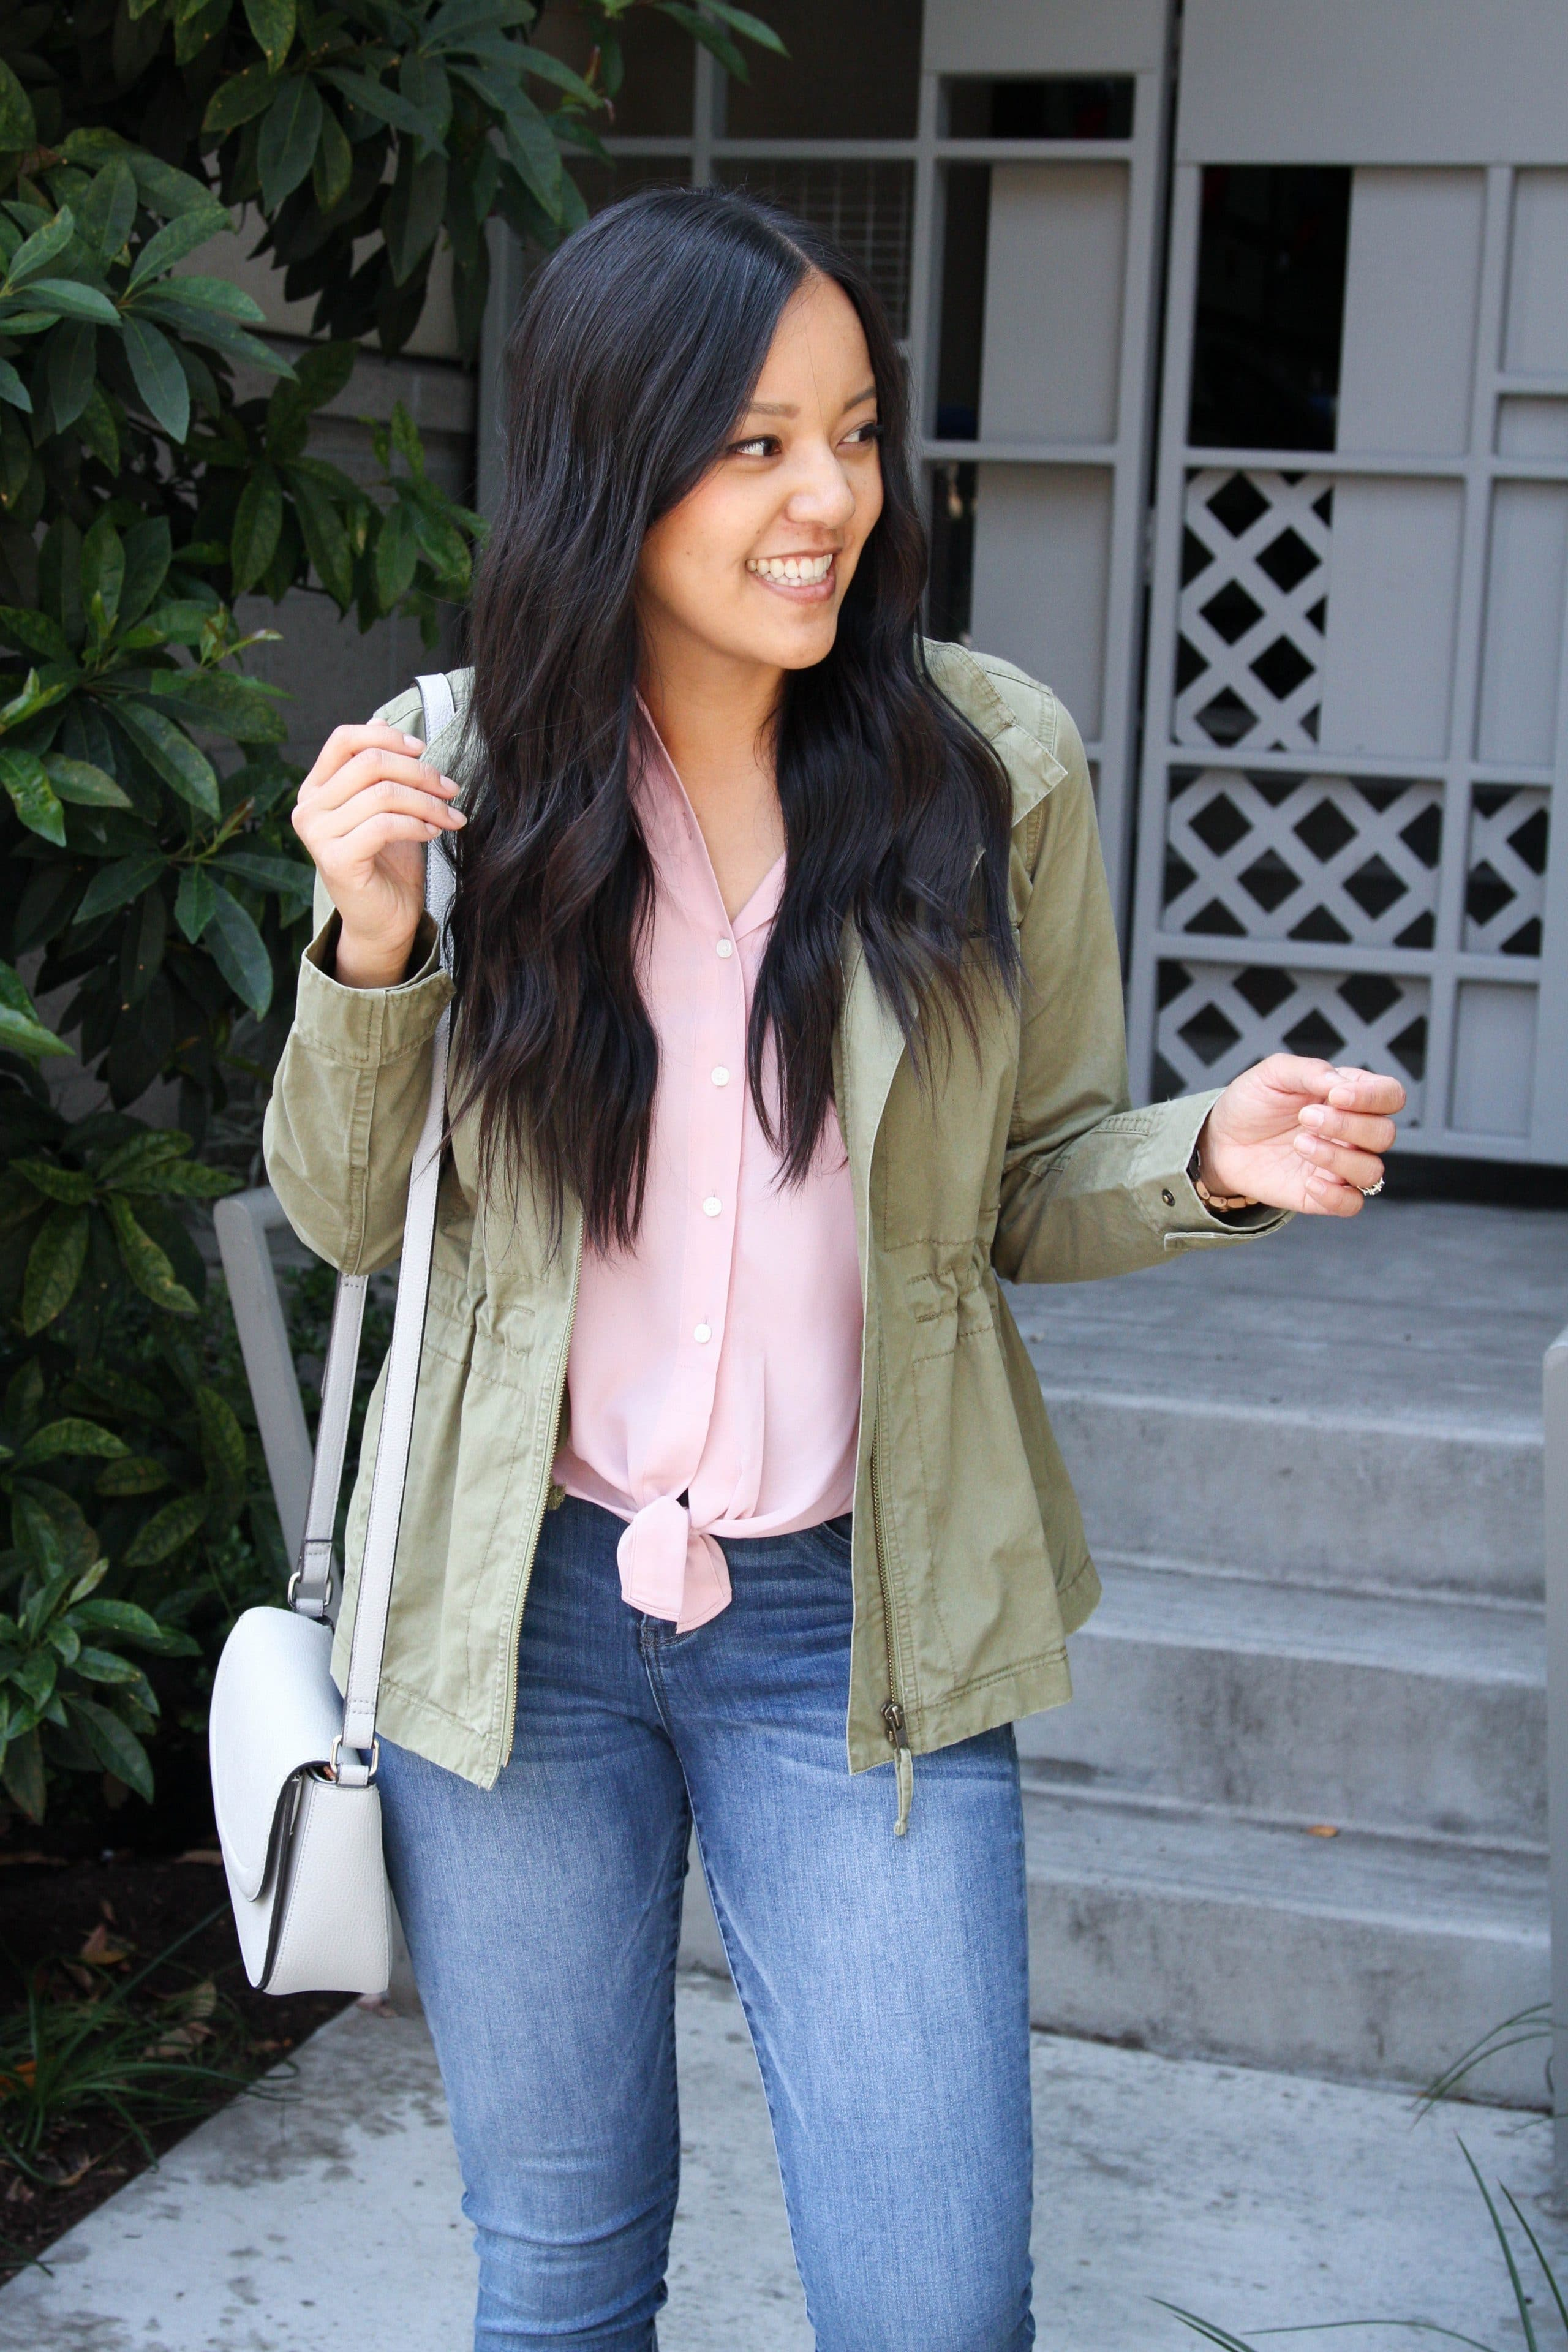 Utility jacket + Light Jeans + gray bag + Pink Top